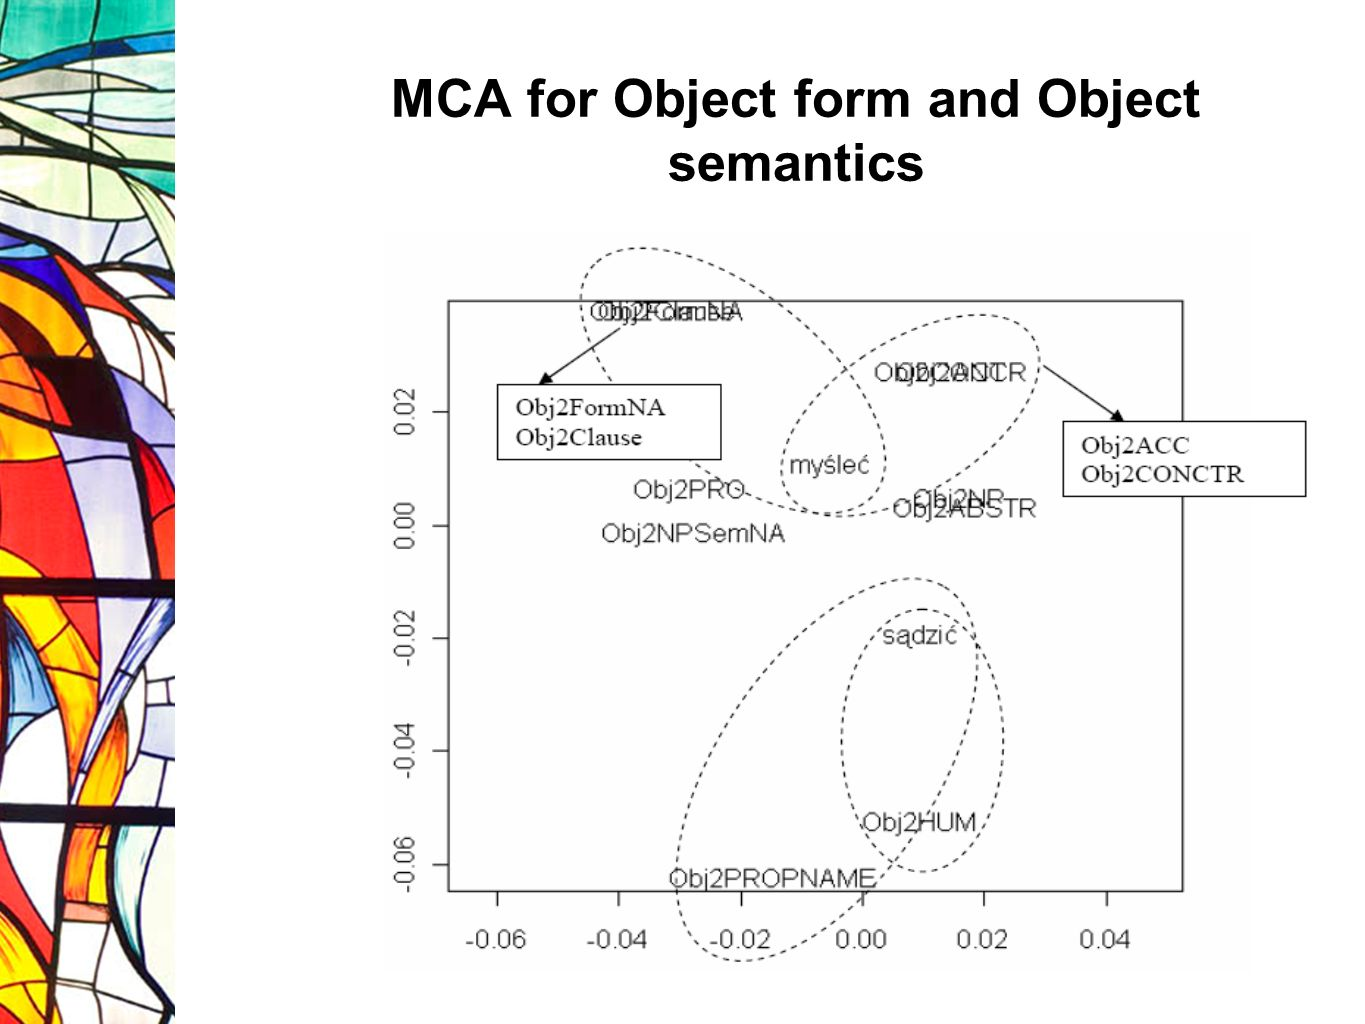 MCA for Object form and Object semantics